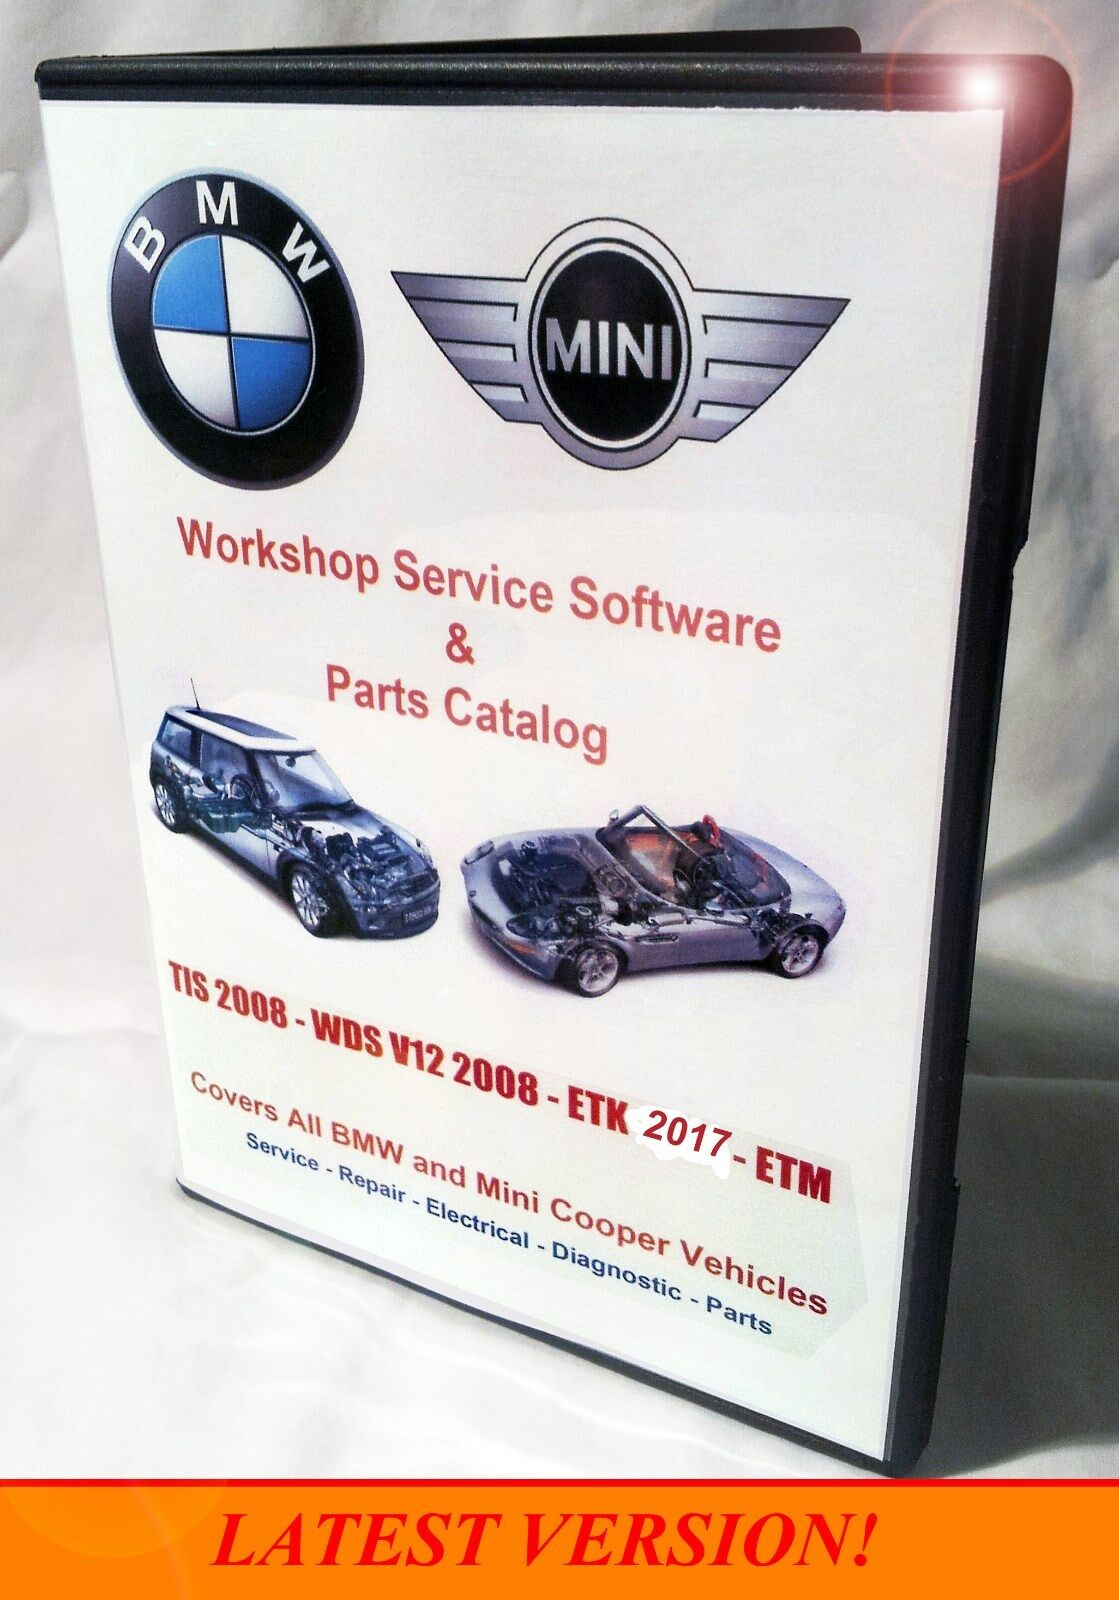 Bmw Wds Electrical Wiring Diagrams Schematics Tis Etk Repair 2001 740il Exhaust Diagram Schematic Manual Dvd 1 Of 11free Shipping See More